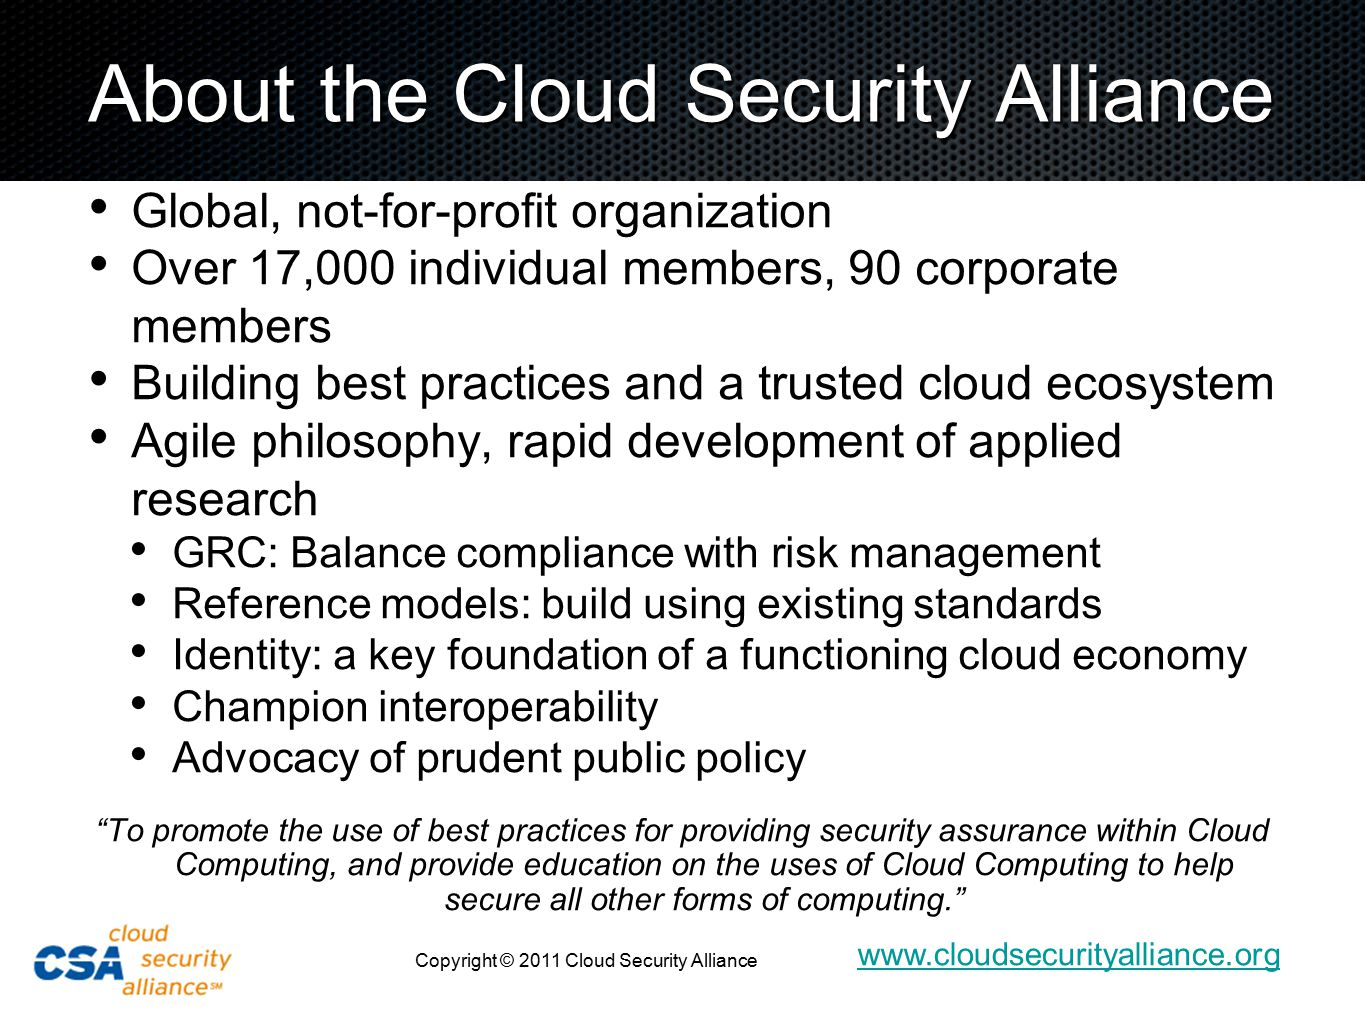 www.cloudsecurityalliance.org Copyright © 2011 Cloud Security Alliance Helpful research from CSA